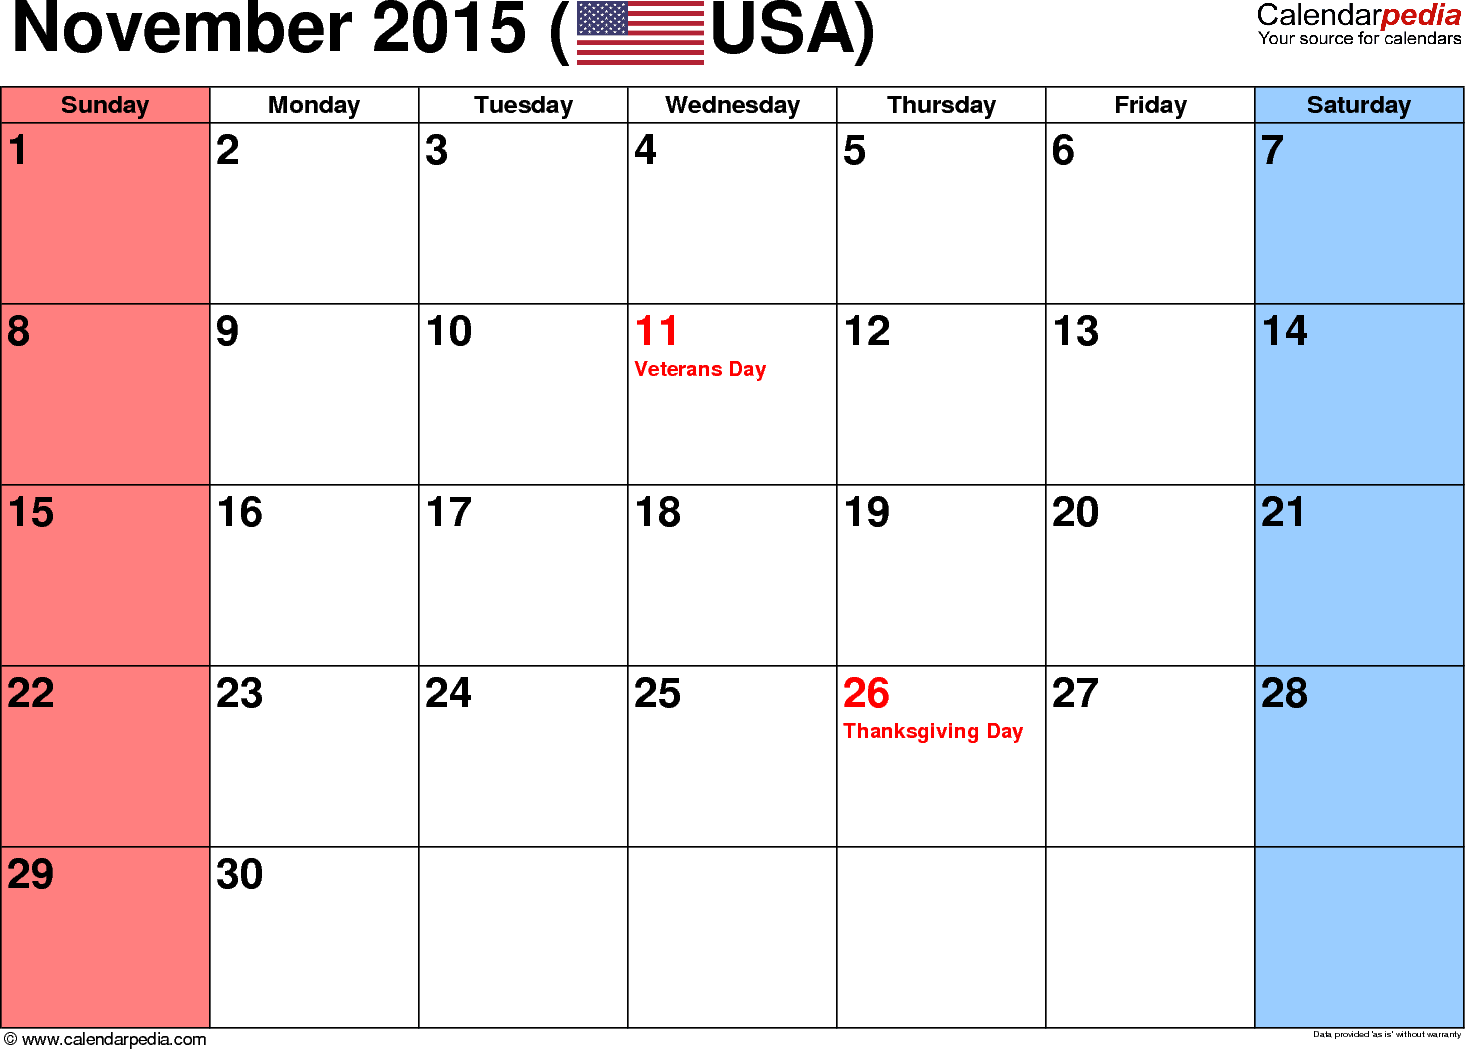 November 2015 Calendars for Word, Excel & PDF